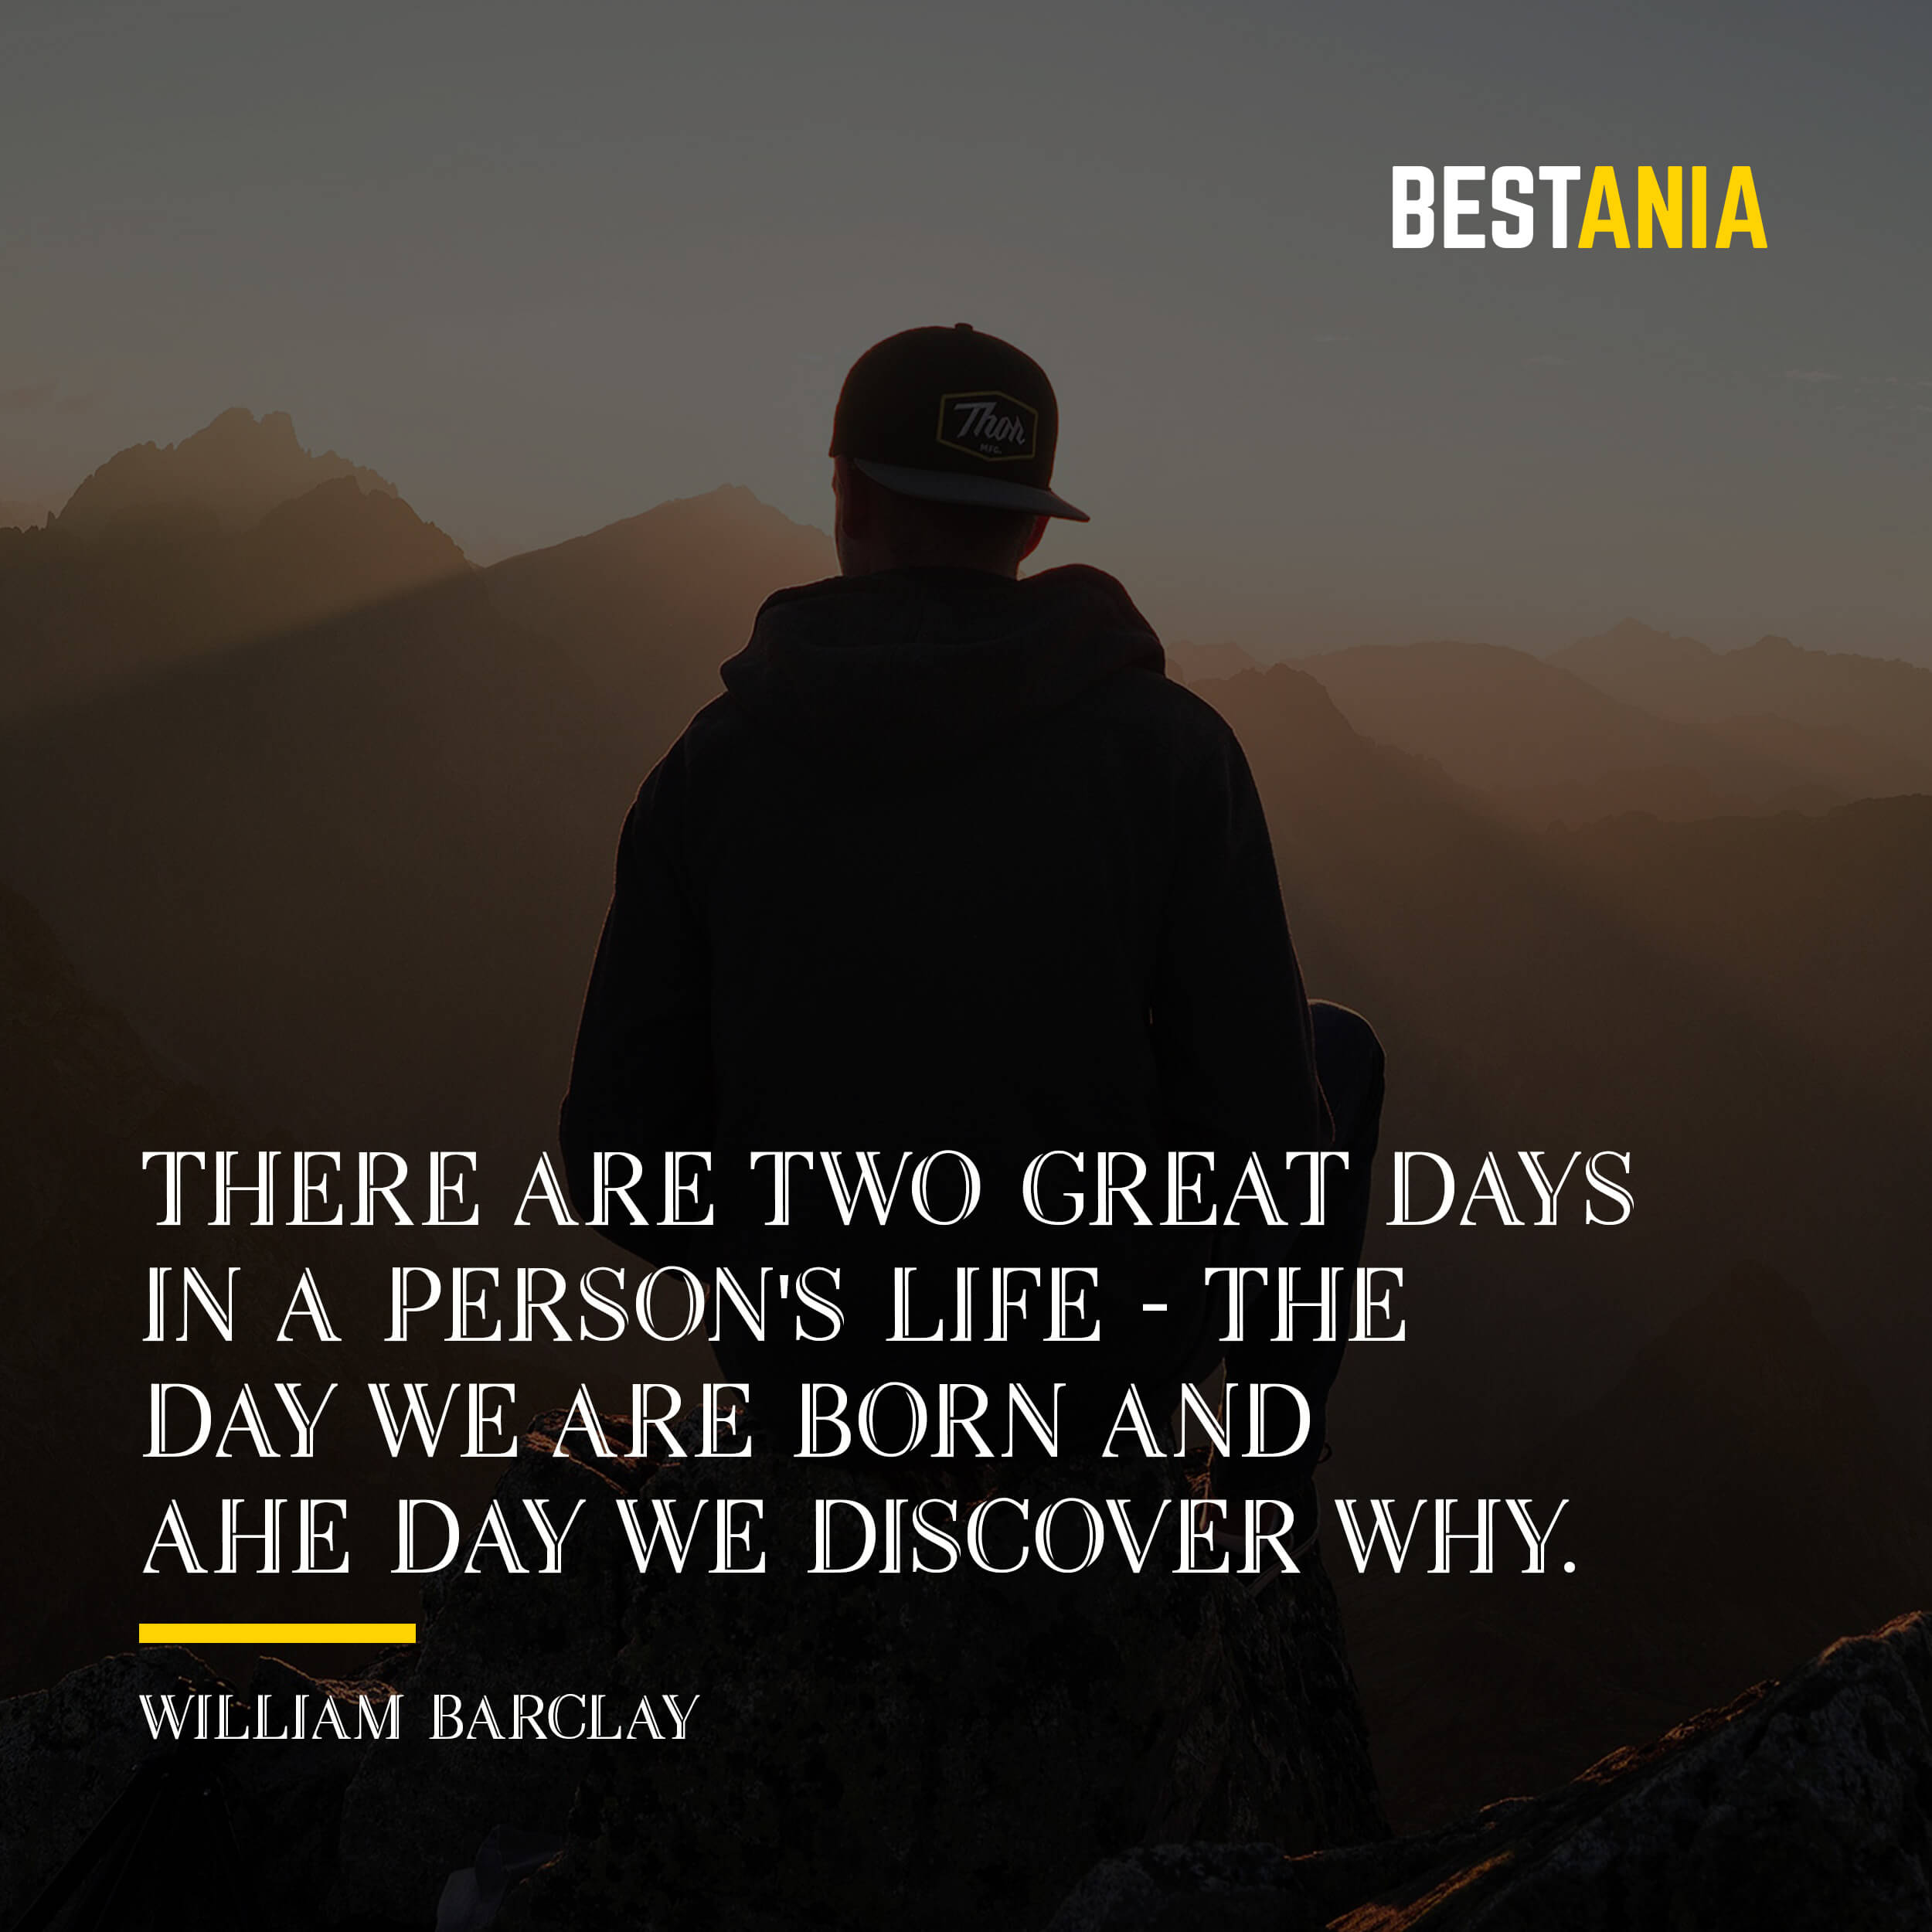 """""""THERE ARE TWO GREAT DAYS IN A PERSON'S LIFE - THE DAY WE ARE BORN AND THE DAY WE DISCOVER WHY.""""  WILLIAM BARCLAY"""